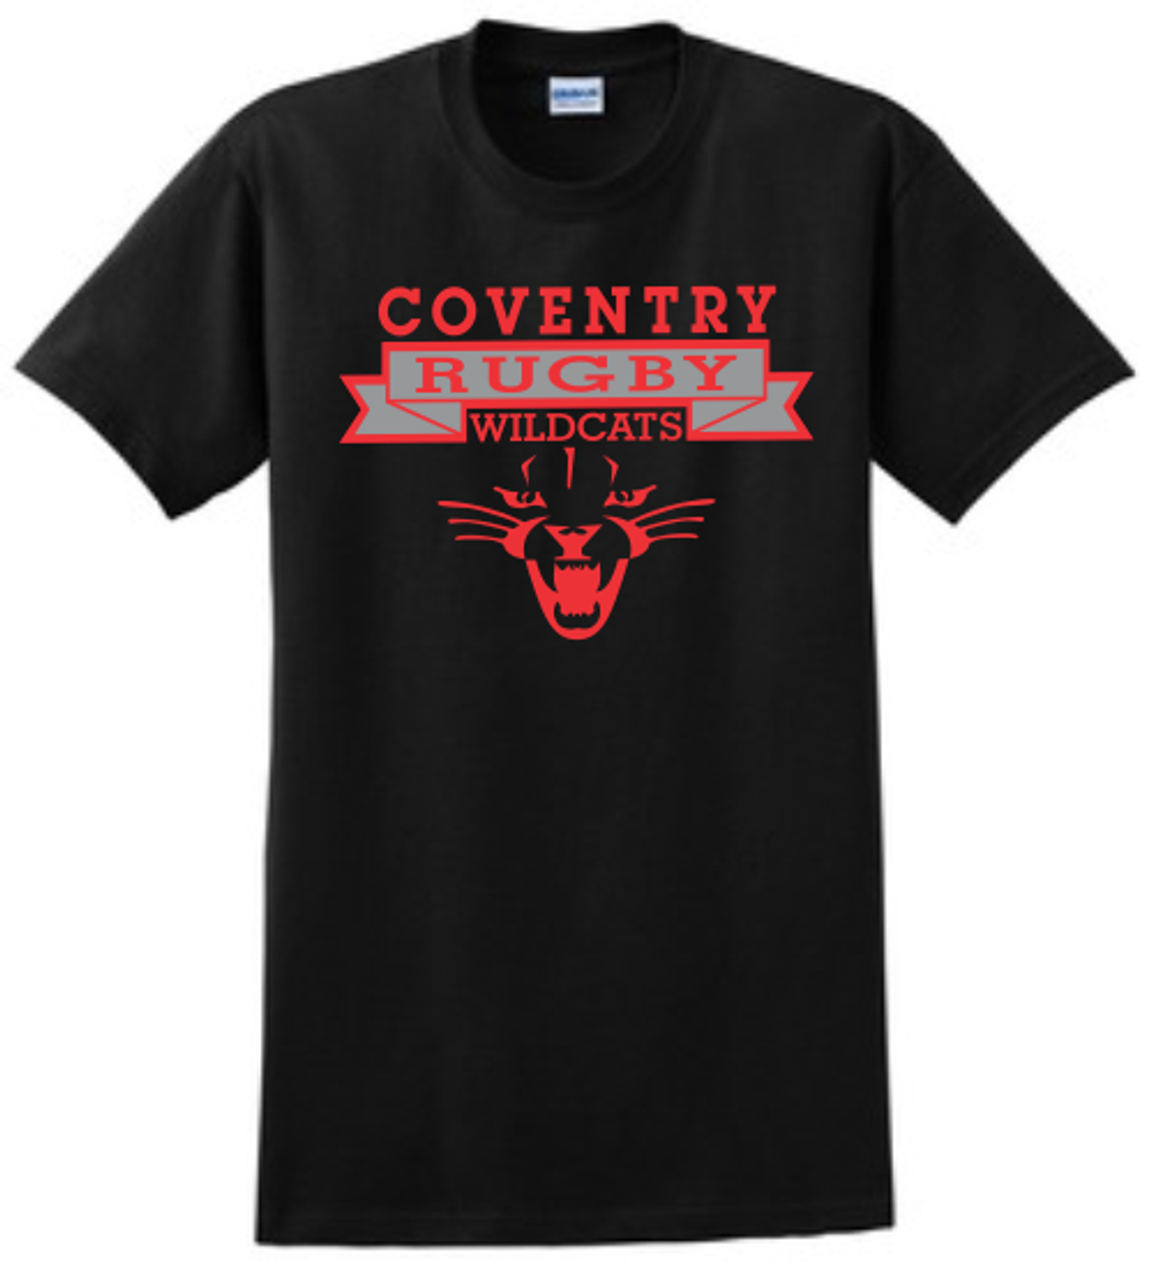 Coventry Rugby Wildcats Cotton Tee, Black